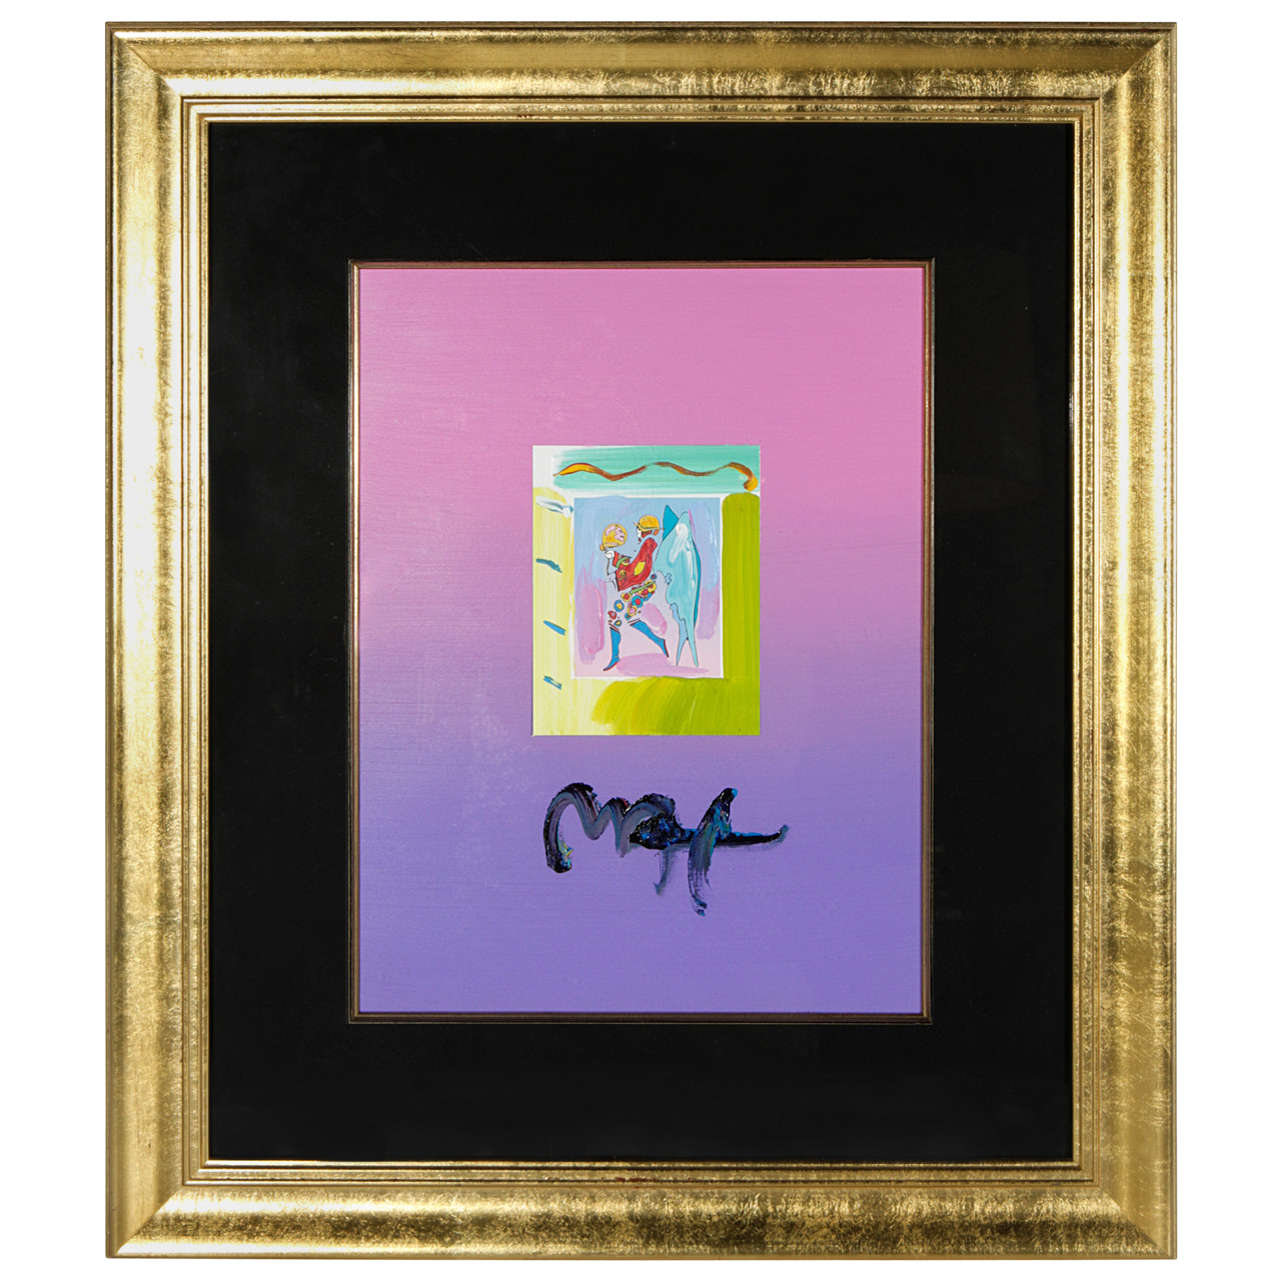 Peter Max Framed Artwork